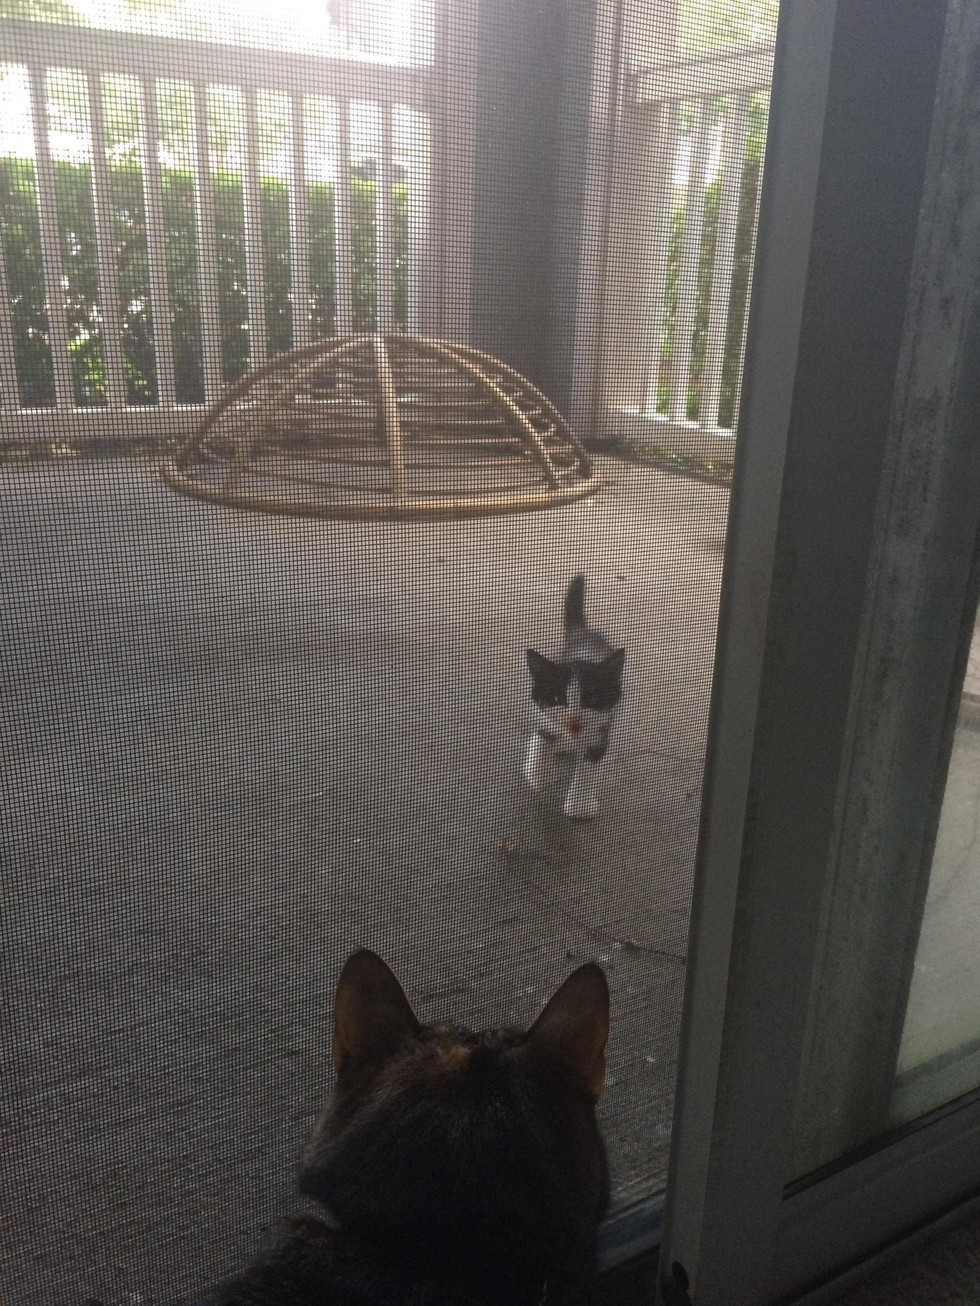 kw1 & Stray kitten shows up at door and demands to be adopted (Gallery)